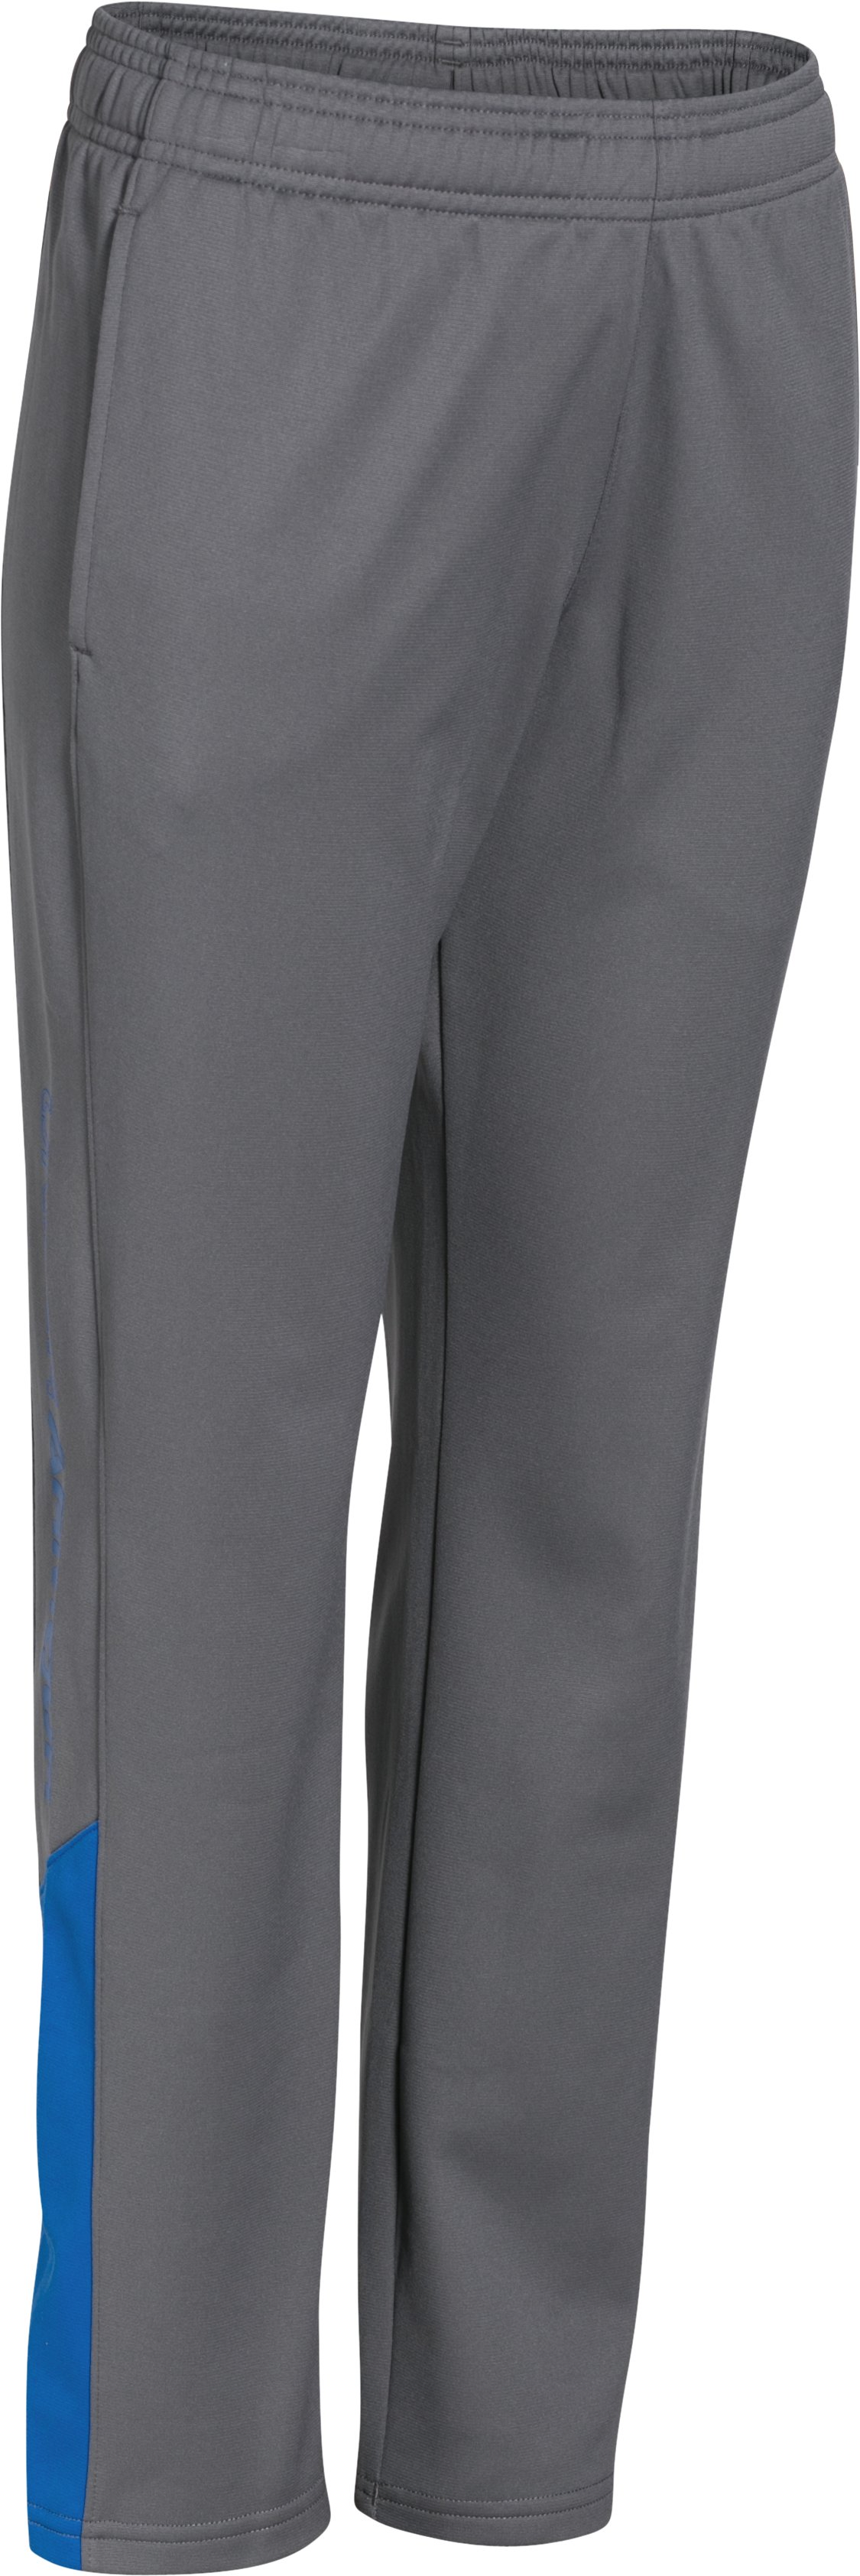 Boys' UA Brawler Pants, Graphite